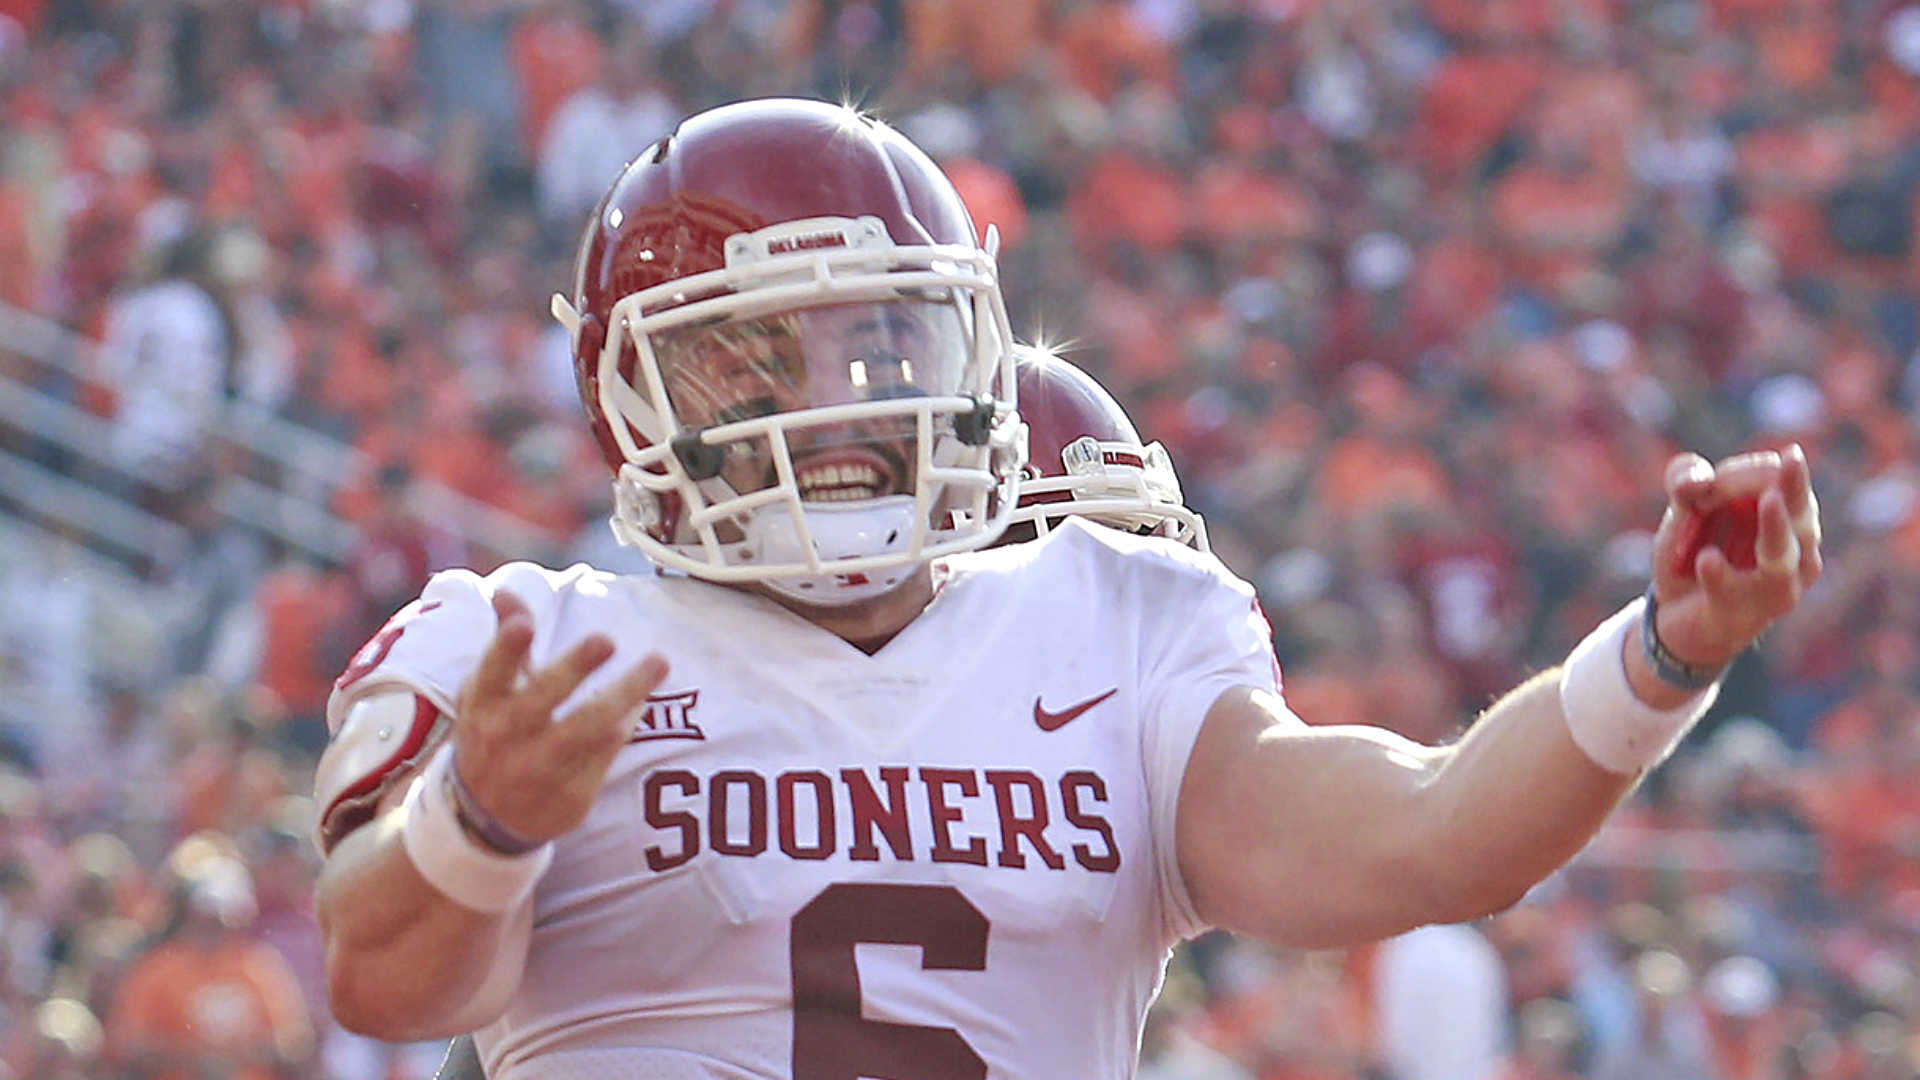 Senior Bowl 2018: Baker Mayfield to play little, if at all, agent says